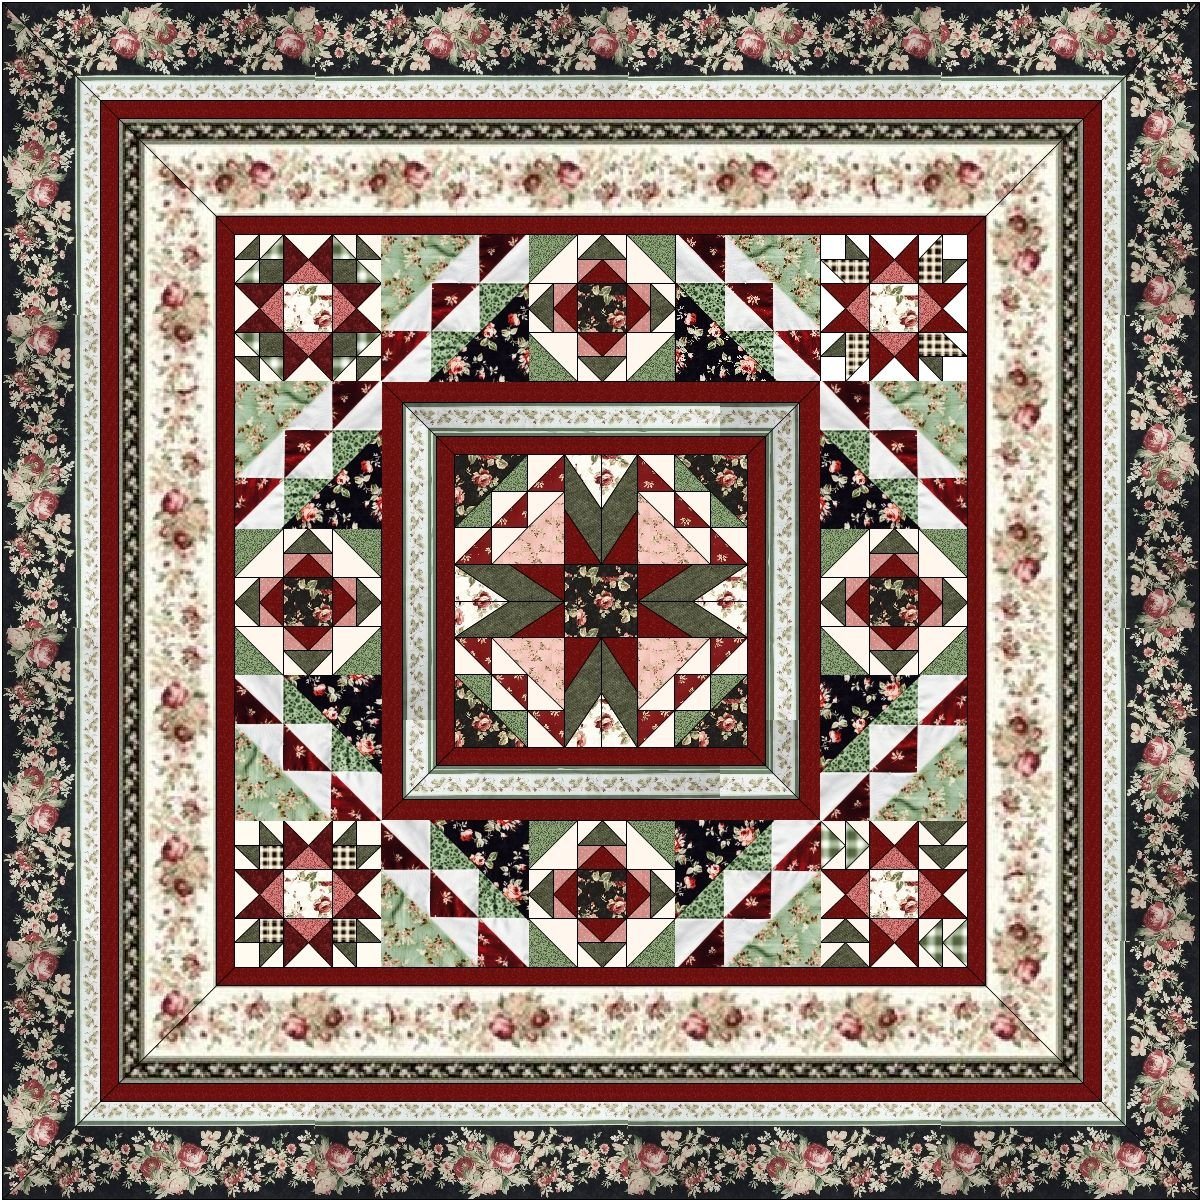 .Tomorrow's Promise BOM Quilt - 10-Month Program Includes Backing - SOLD OUT!